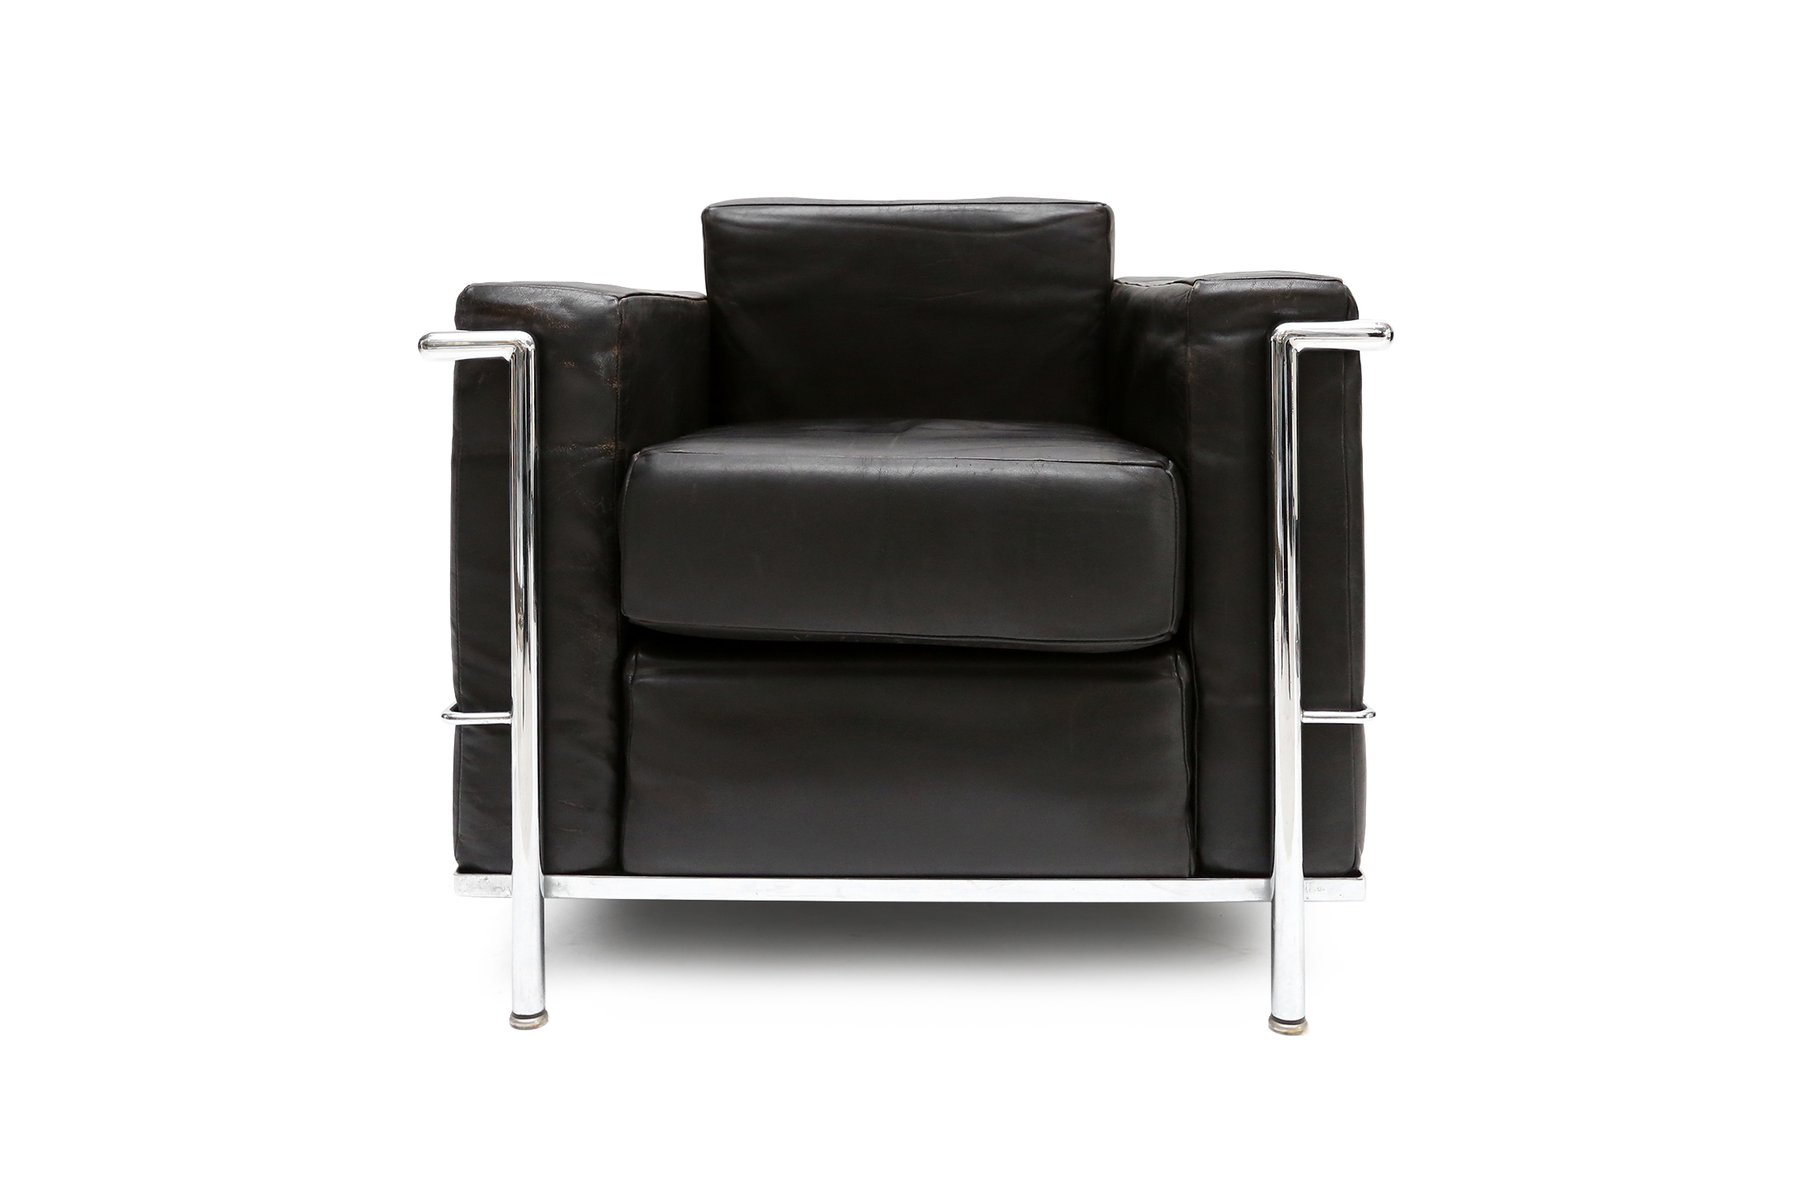 Best Cassina Le Corbusier Photos - Idee Pratiche e di Design ...